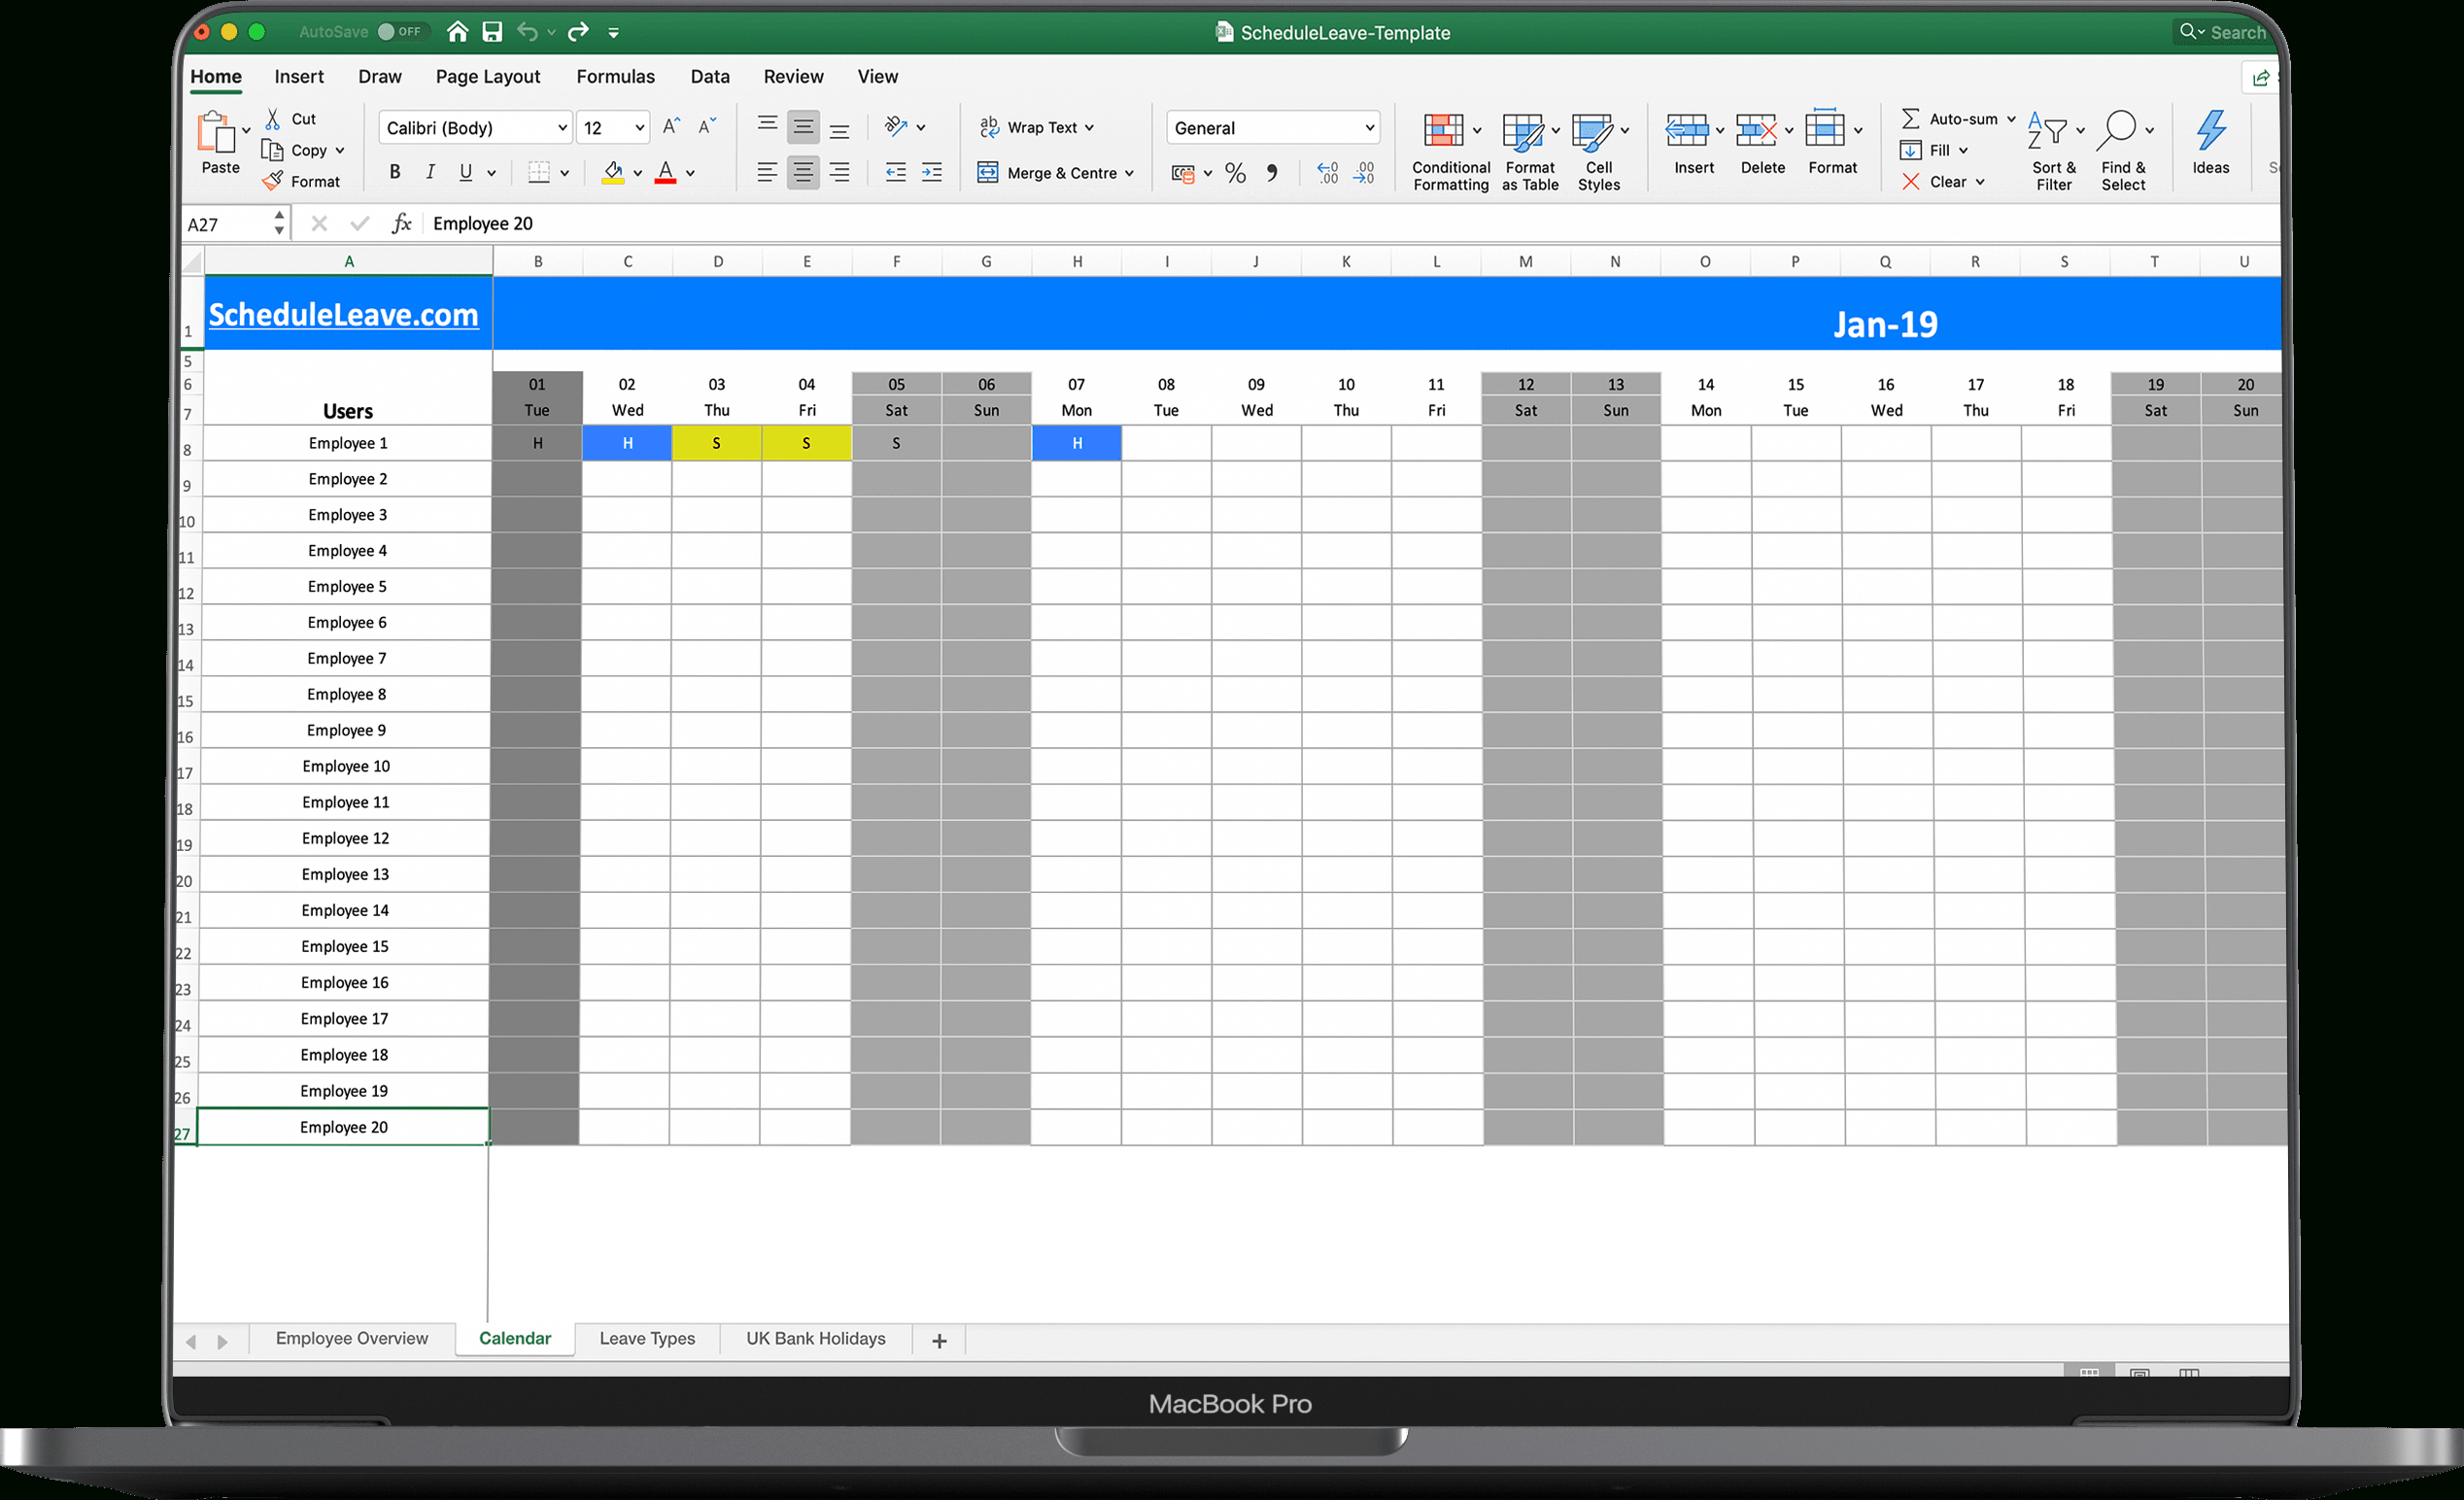 Free Leave & Holiday Tracker Spreadsheet 2020  Scheduleleave for Team Leave Calendar Excel